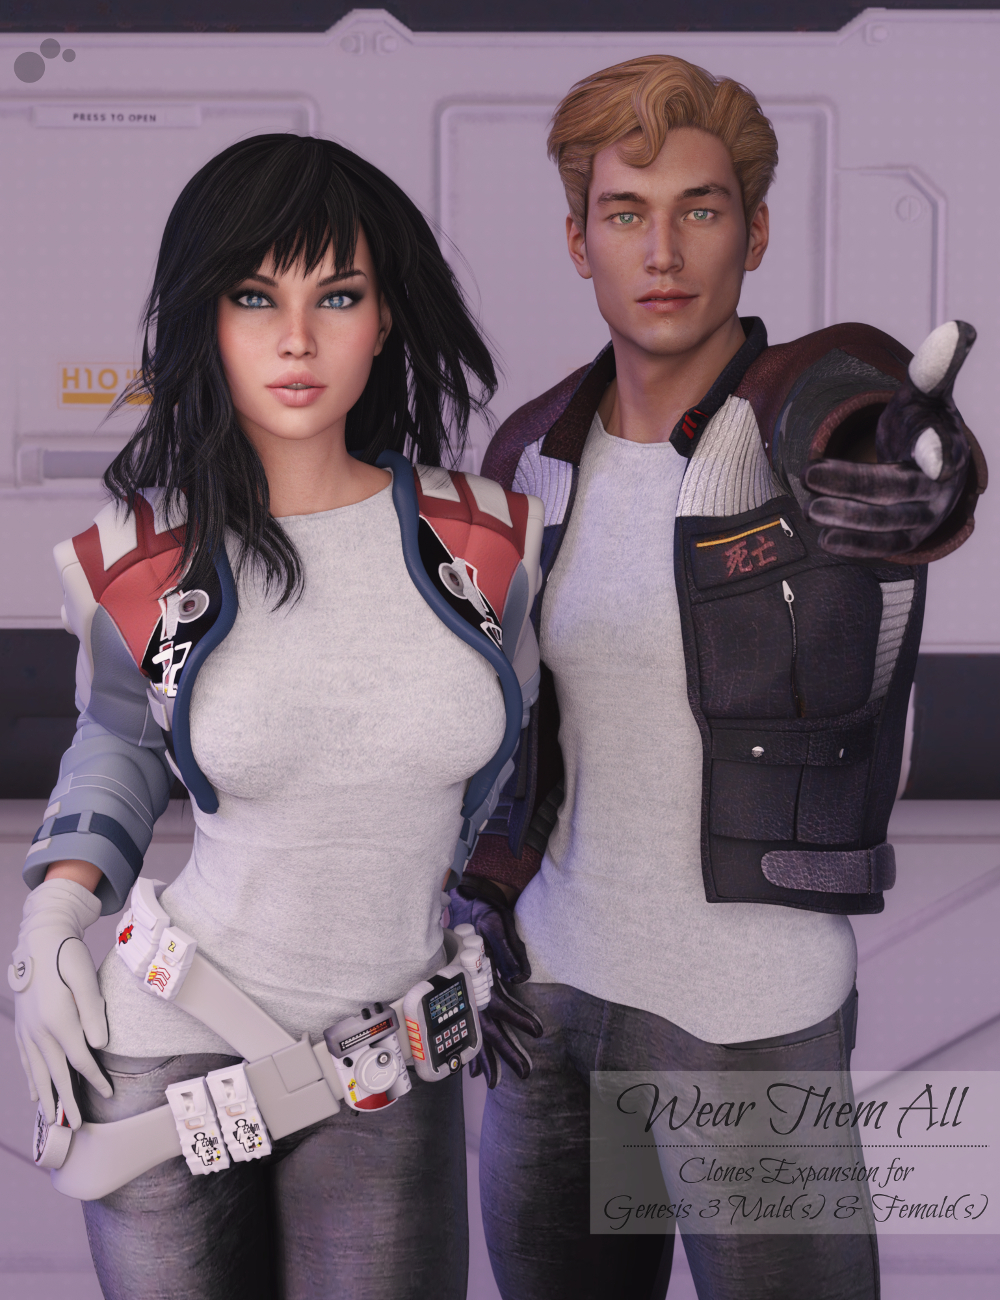 Wear Them All - Autofit Clones Expansion for Genesis 3 Male(s) and Genesis 3 Female(s) by: valzheimer, 3D Models by Daz 3D